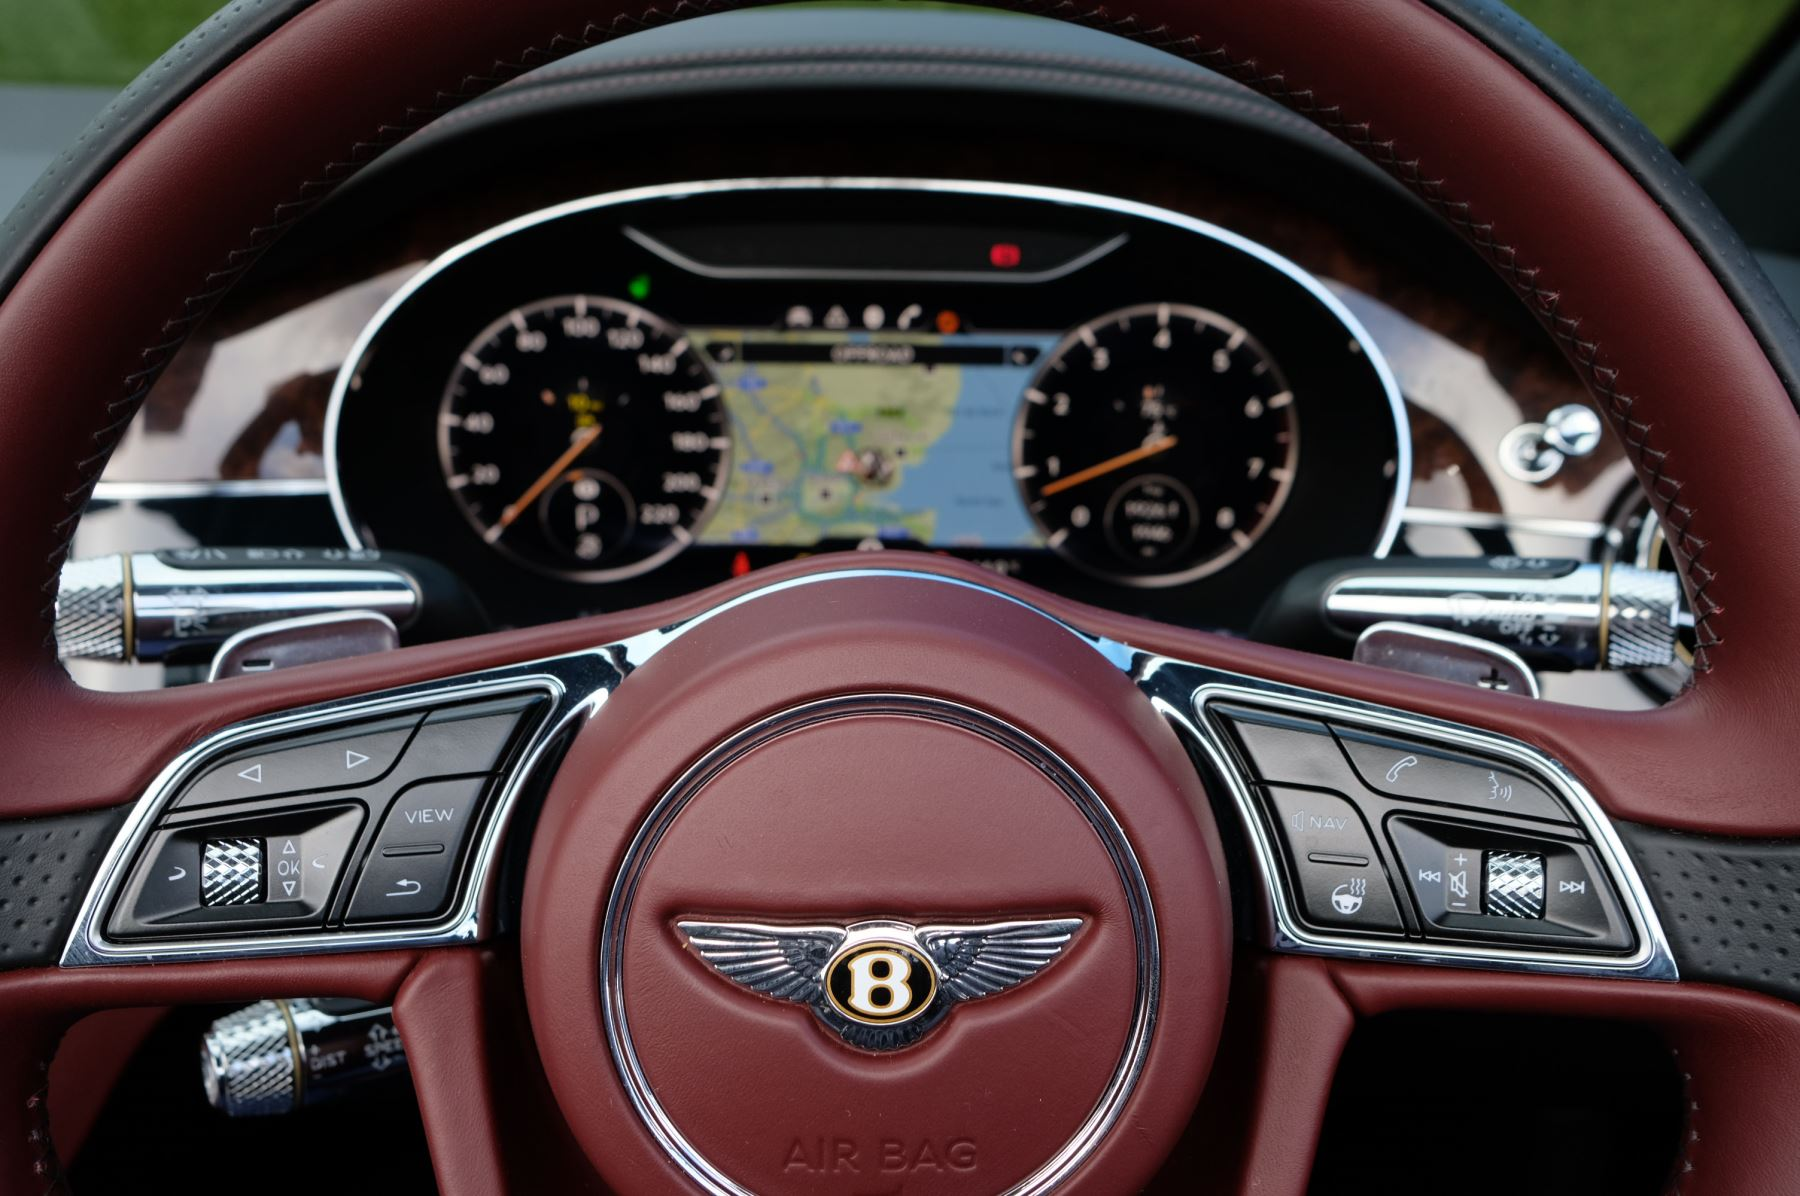 Bentley Continental GTC 6.0 W12 - First Edition Specification image 18